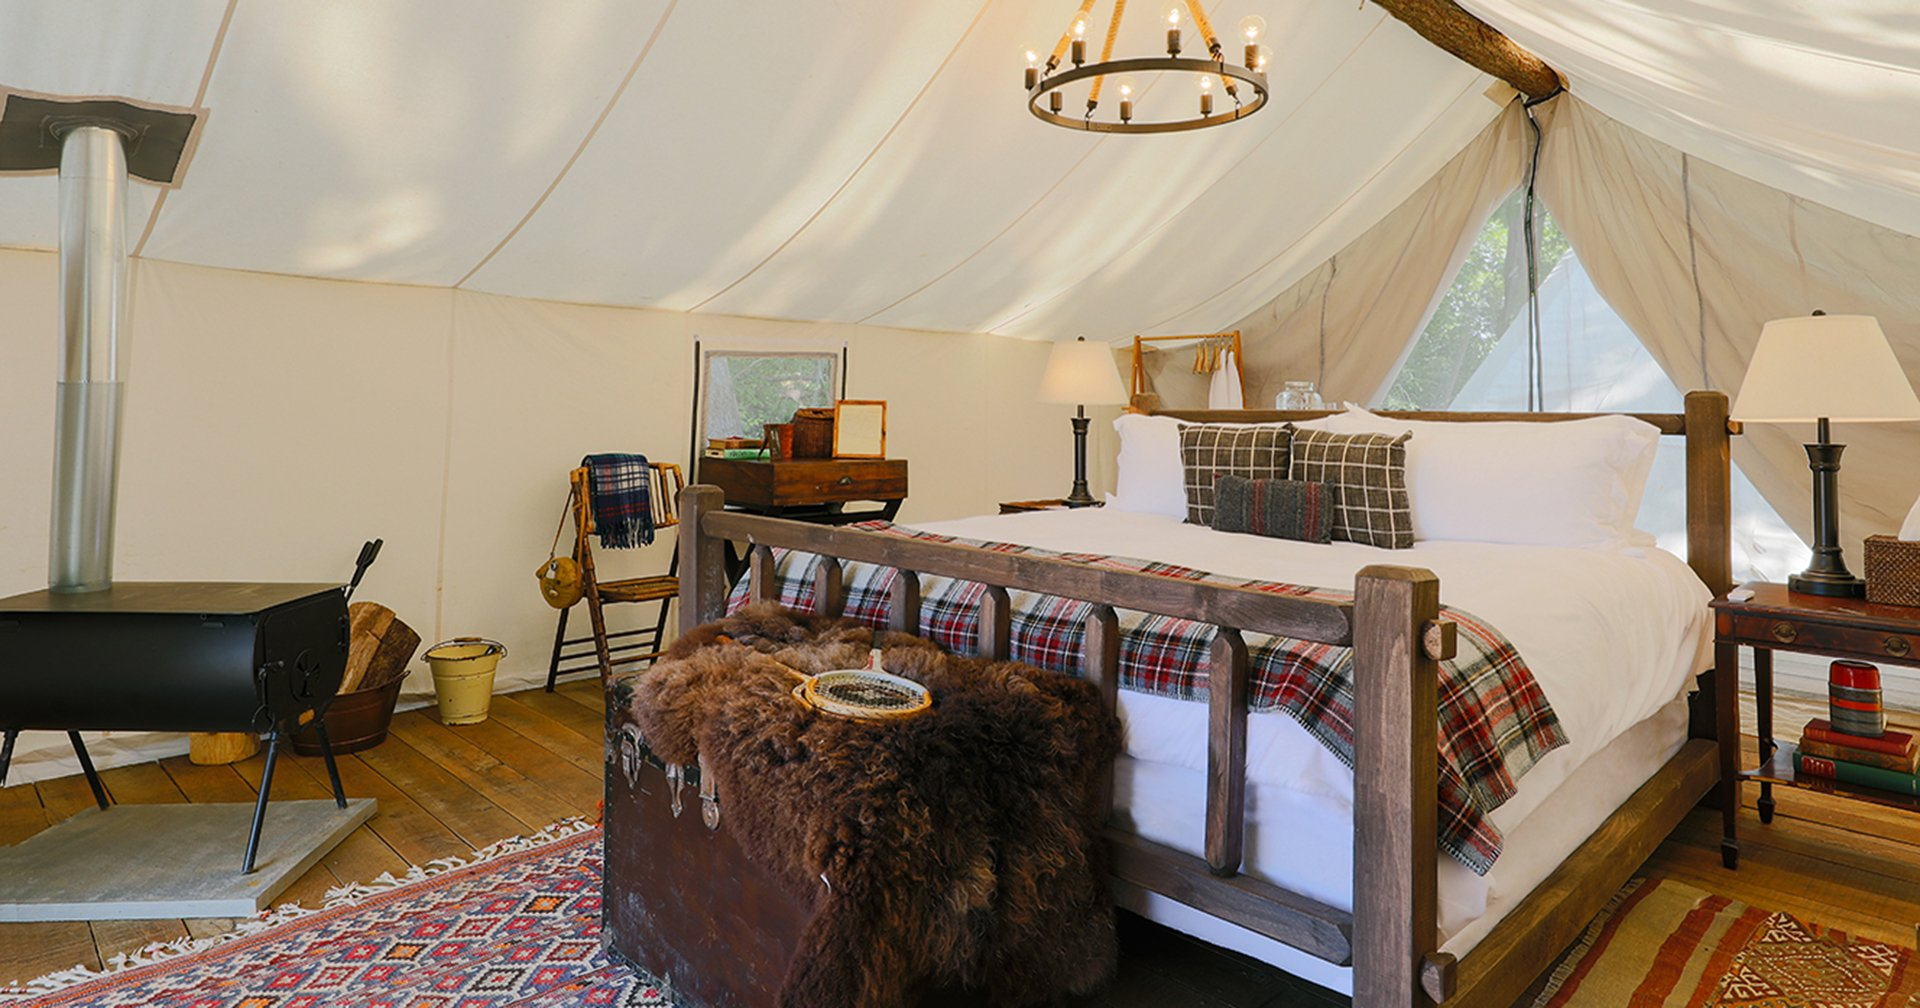 Safari Tents on Governors Island for Rent & Safari Tents on Governors Island for Rent - InsideHook